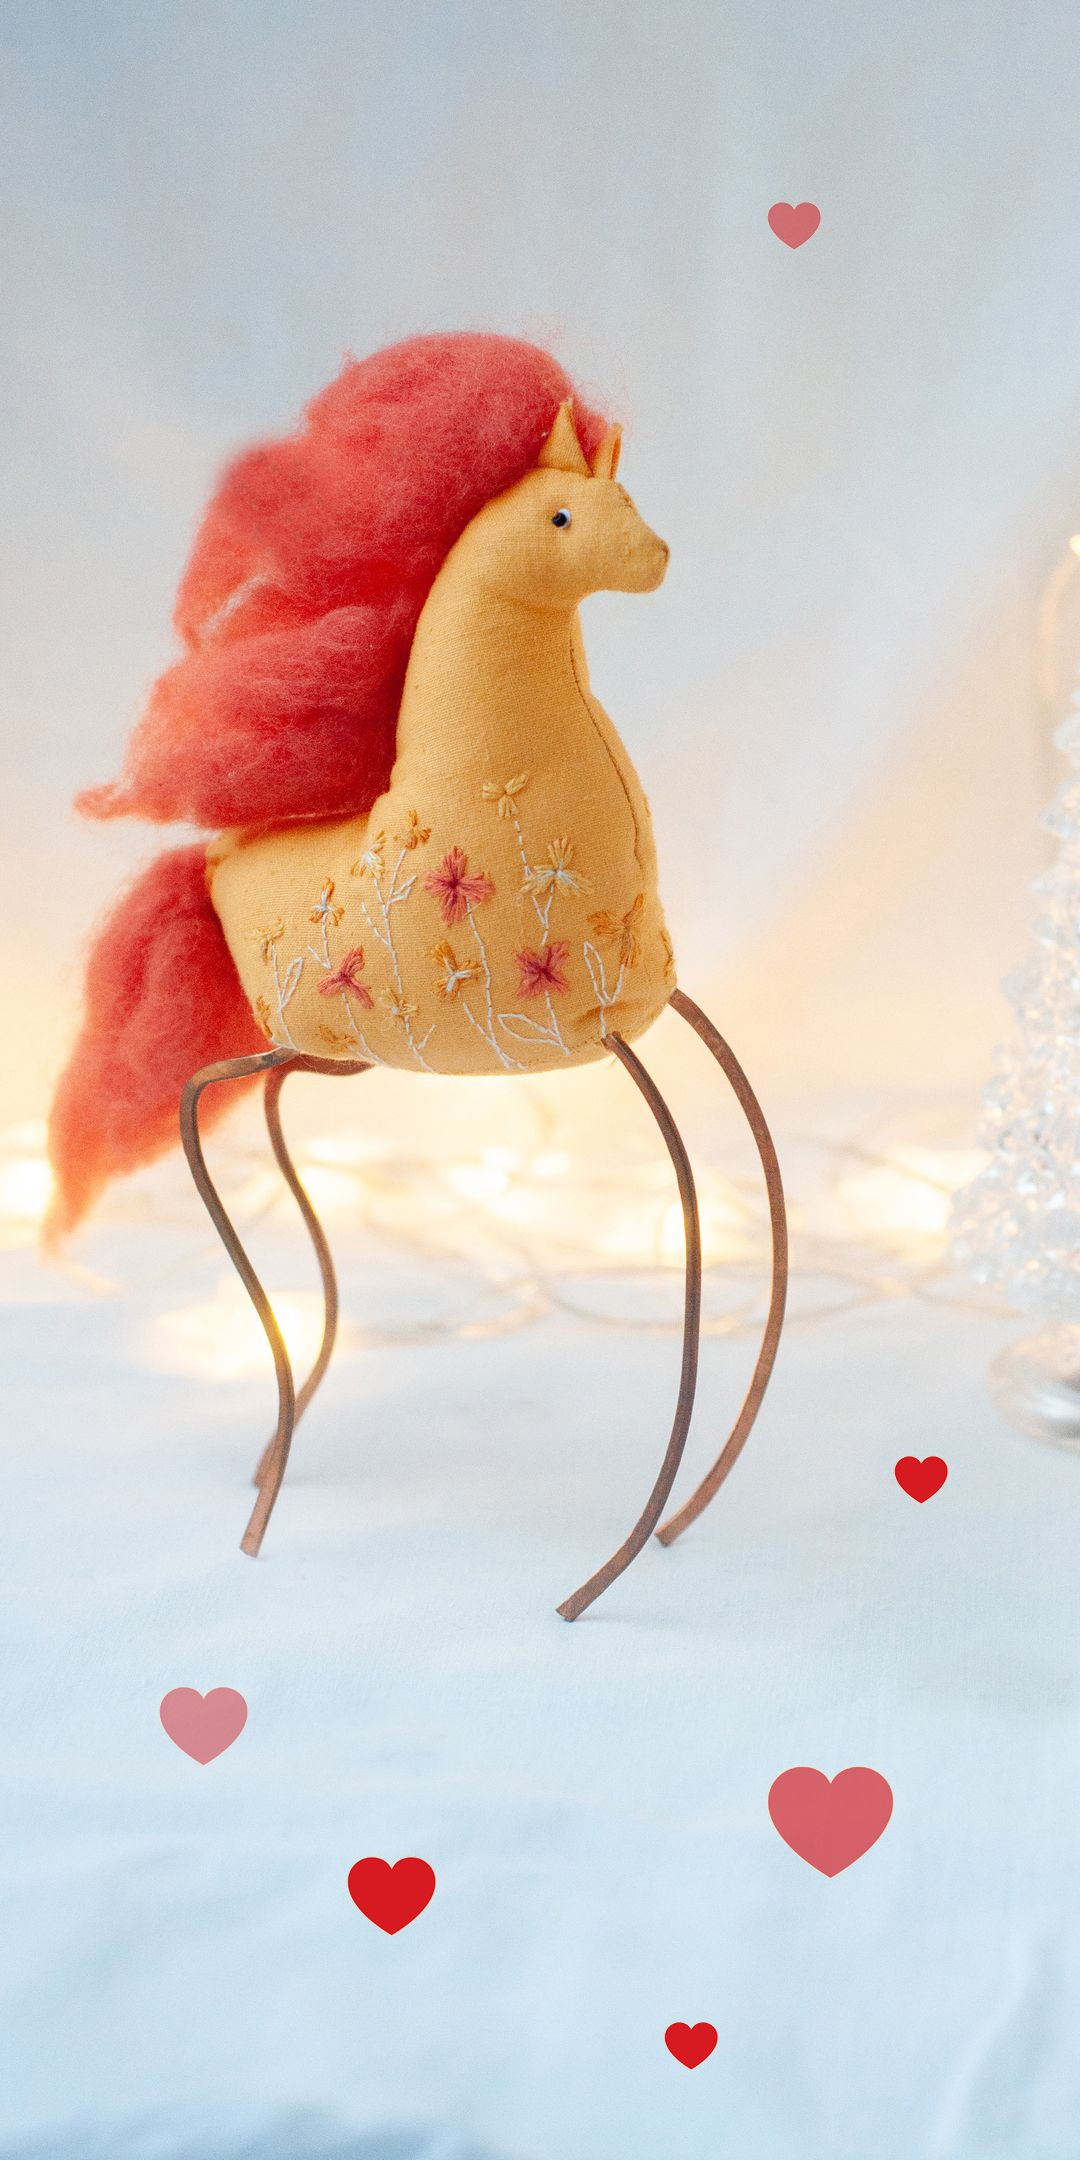 Puppet Christmas Decor Horse Toy With Embroidery Textile Etsy In 2020 Christmas Figurines Christmas Decorations Christmas Ornaments Homemade